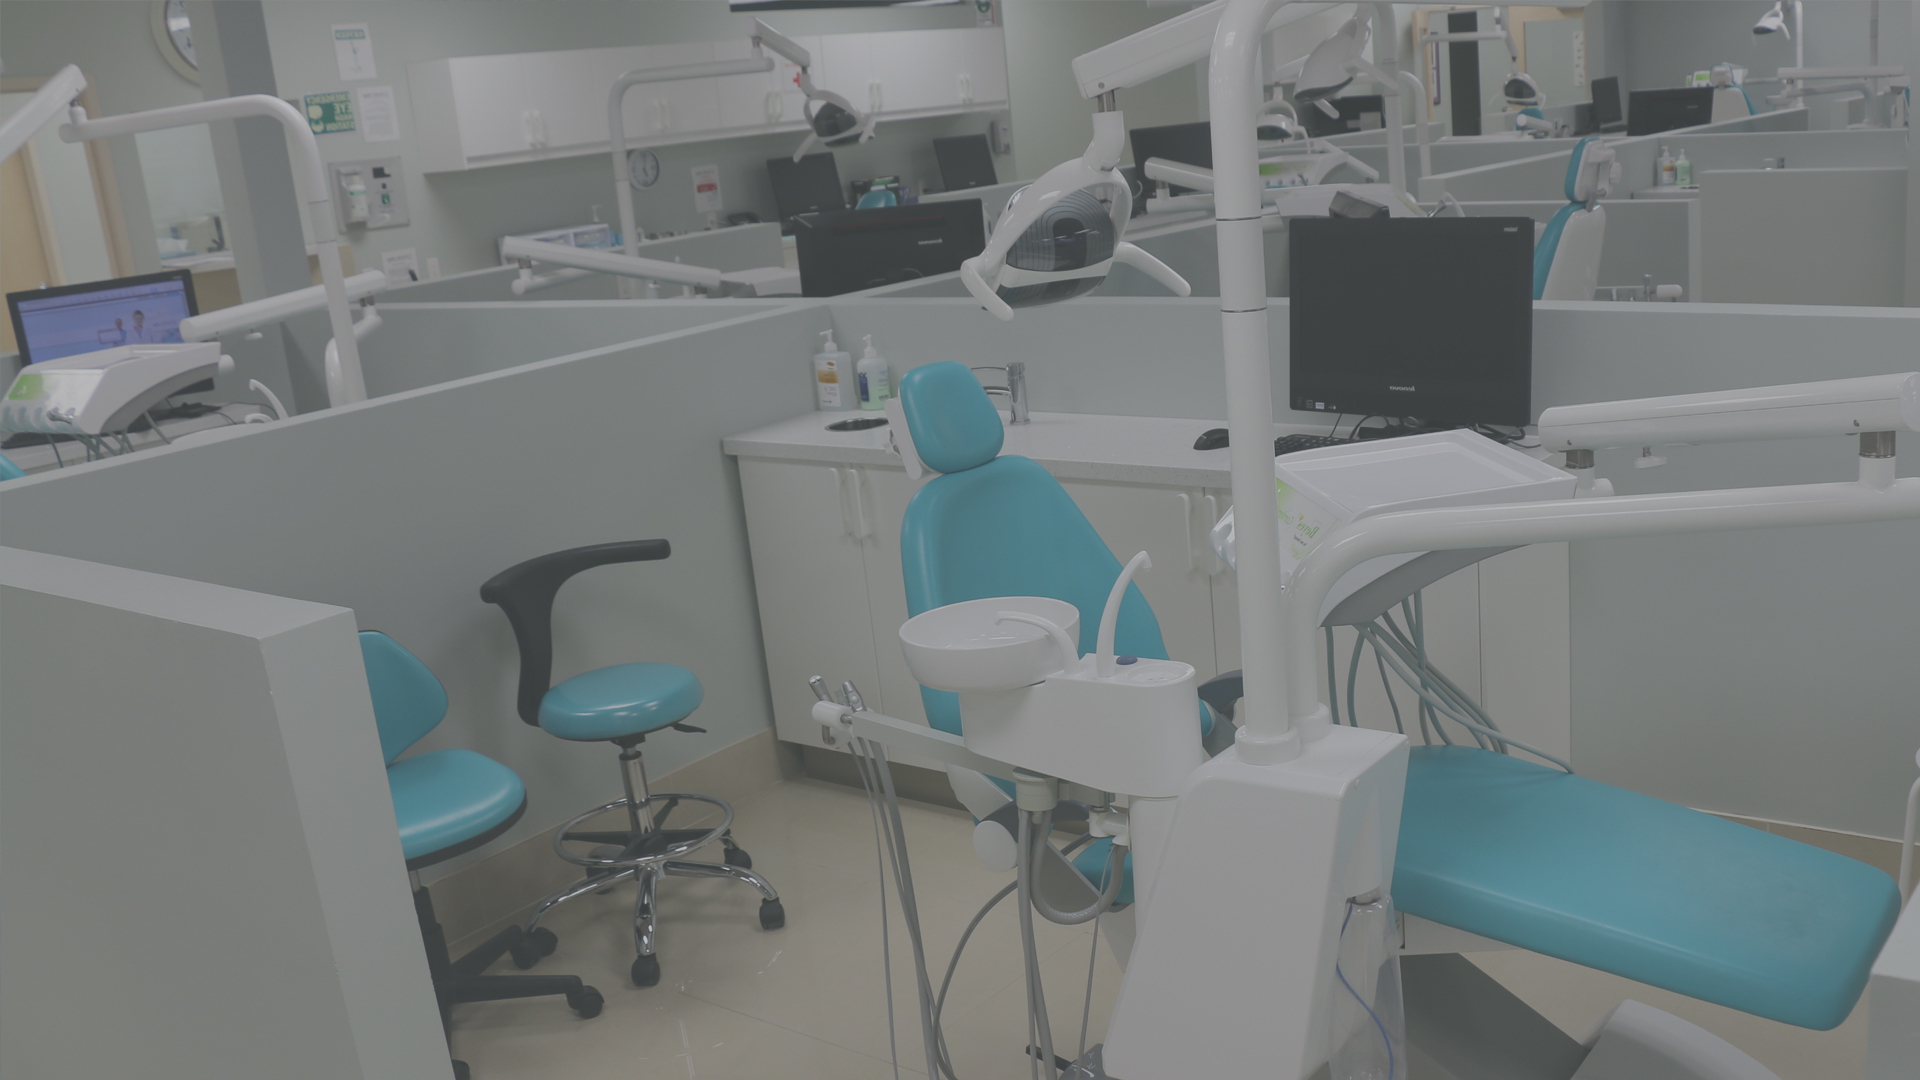 Toronto Colleg of dental hygiene facilities